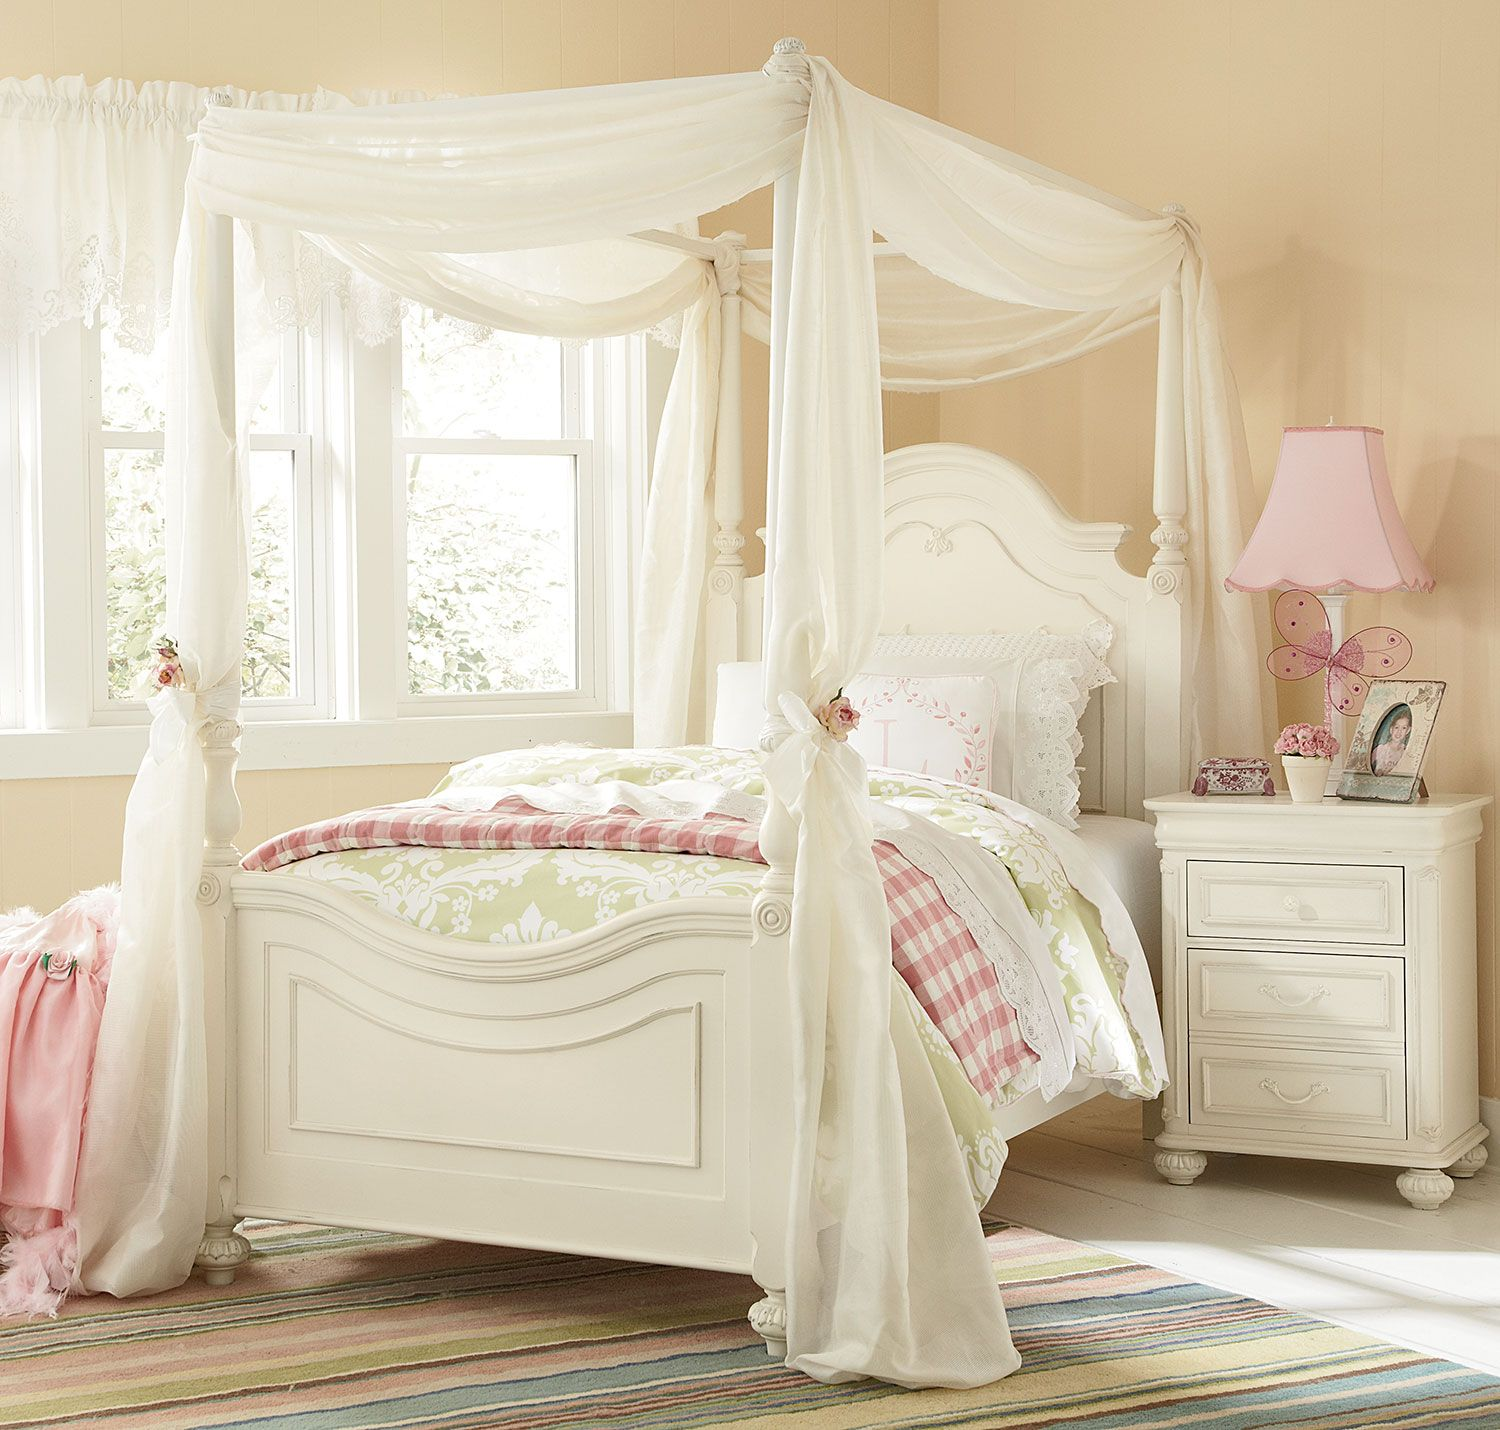 Bedroom Furniture Amber Twin Canopy Bed Antique White Girls Bed Canopy Canopy Bedroom Sets Canopy Bedroom